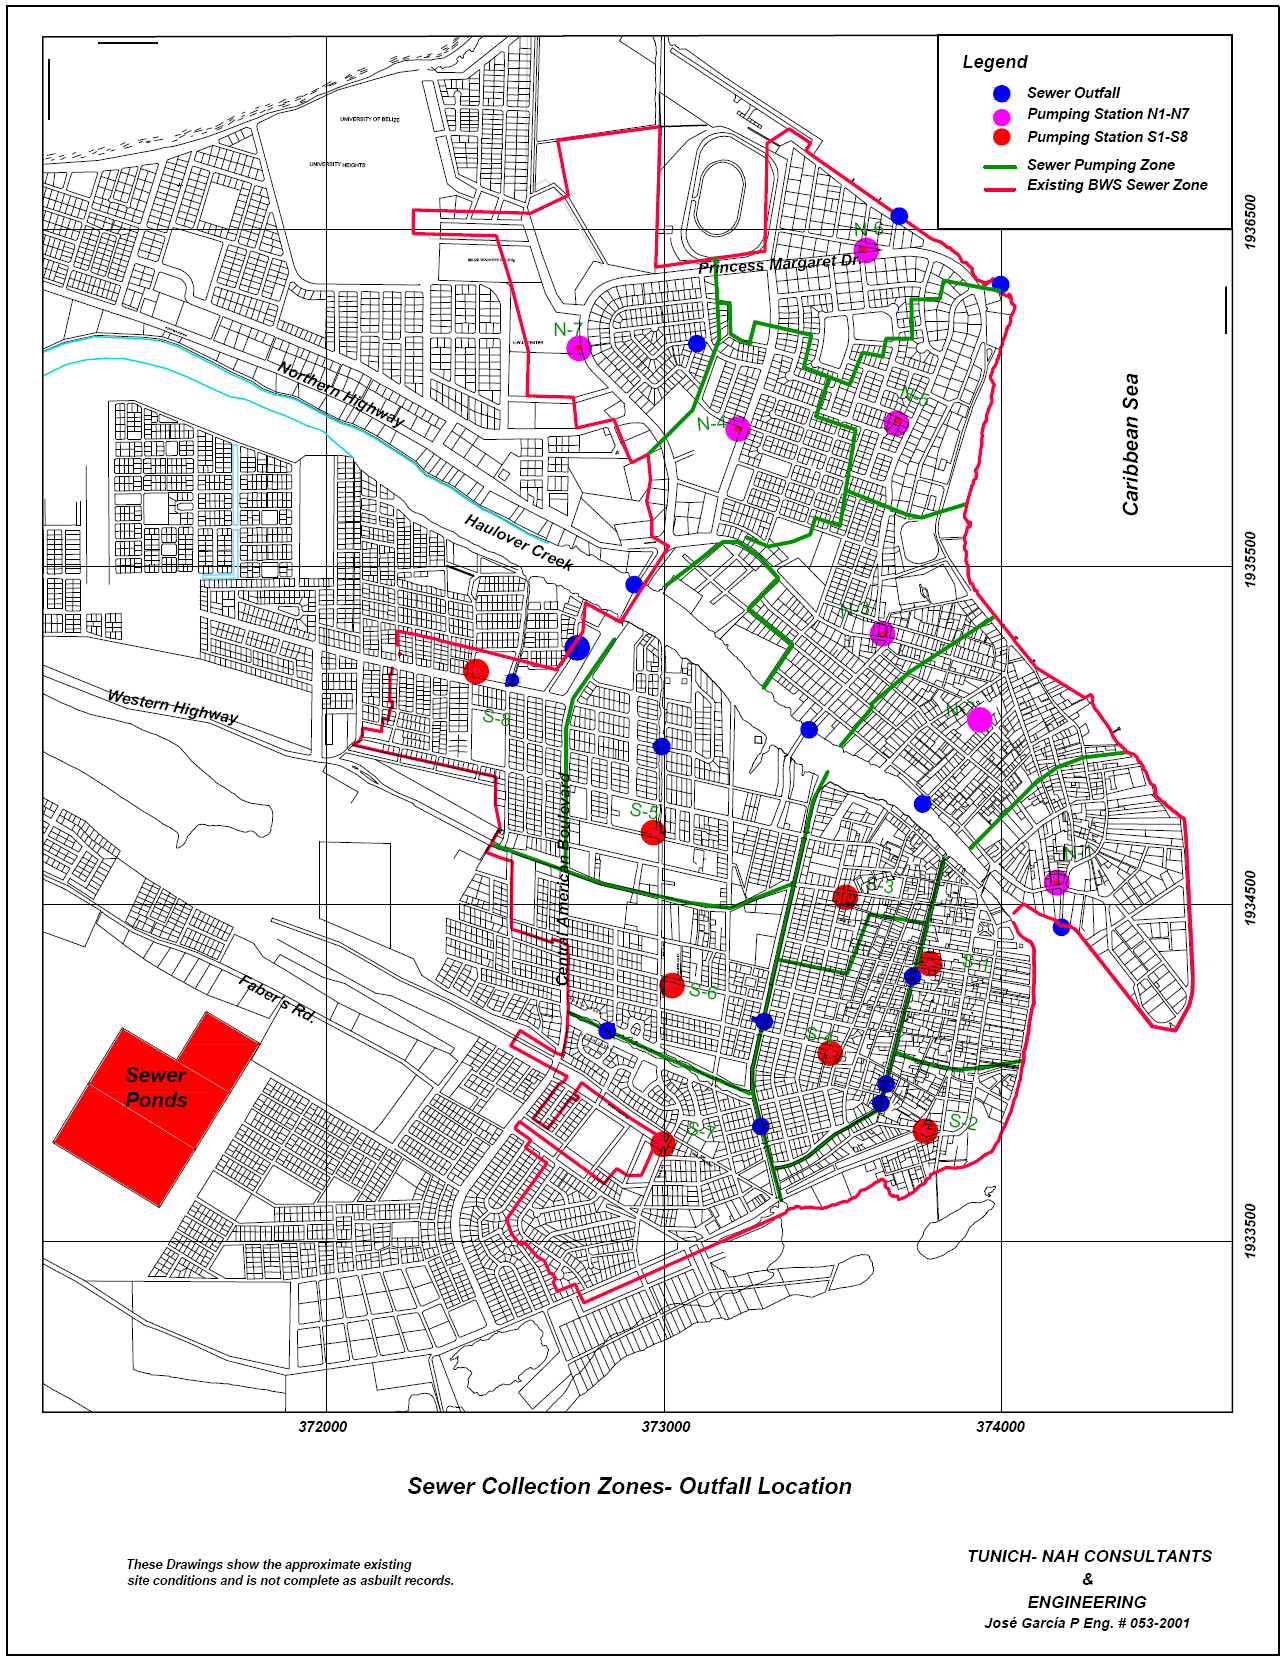 Figure 1-2 Sewer Zones and